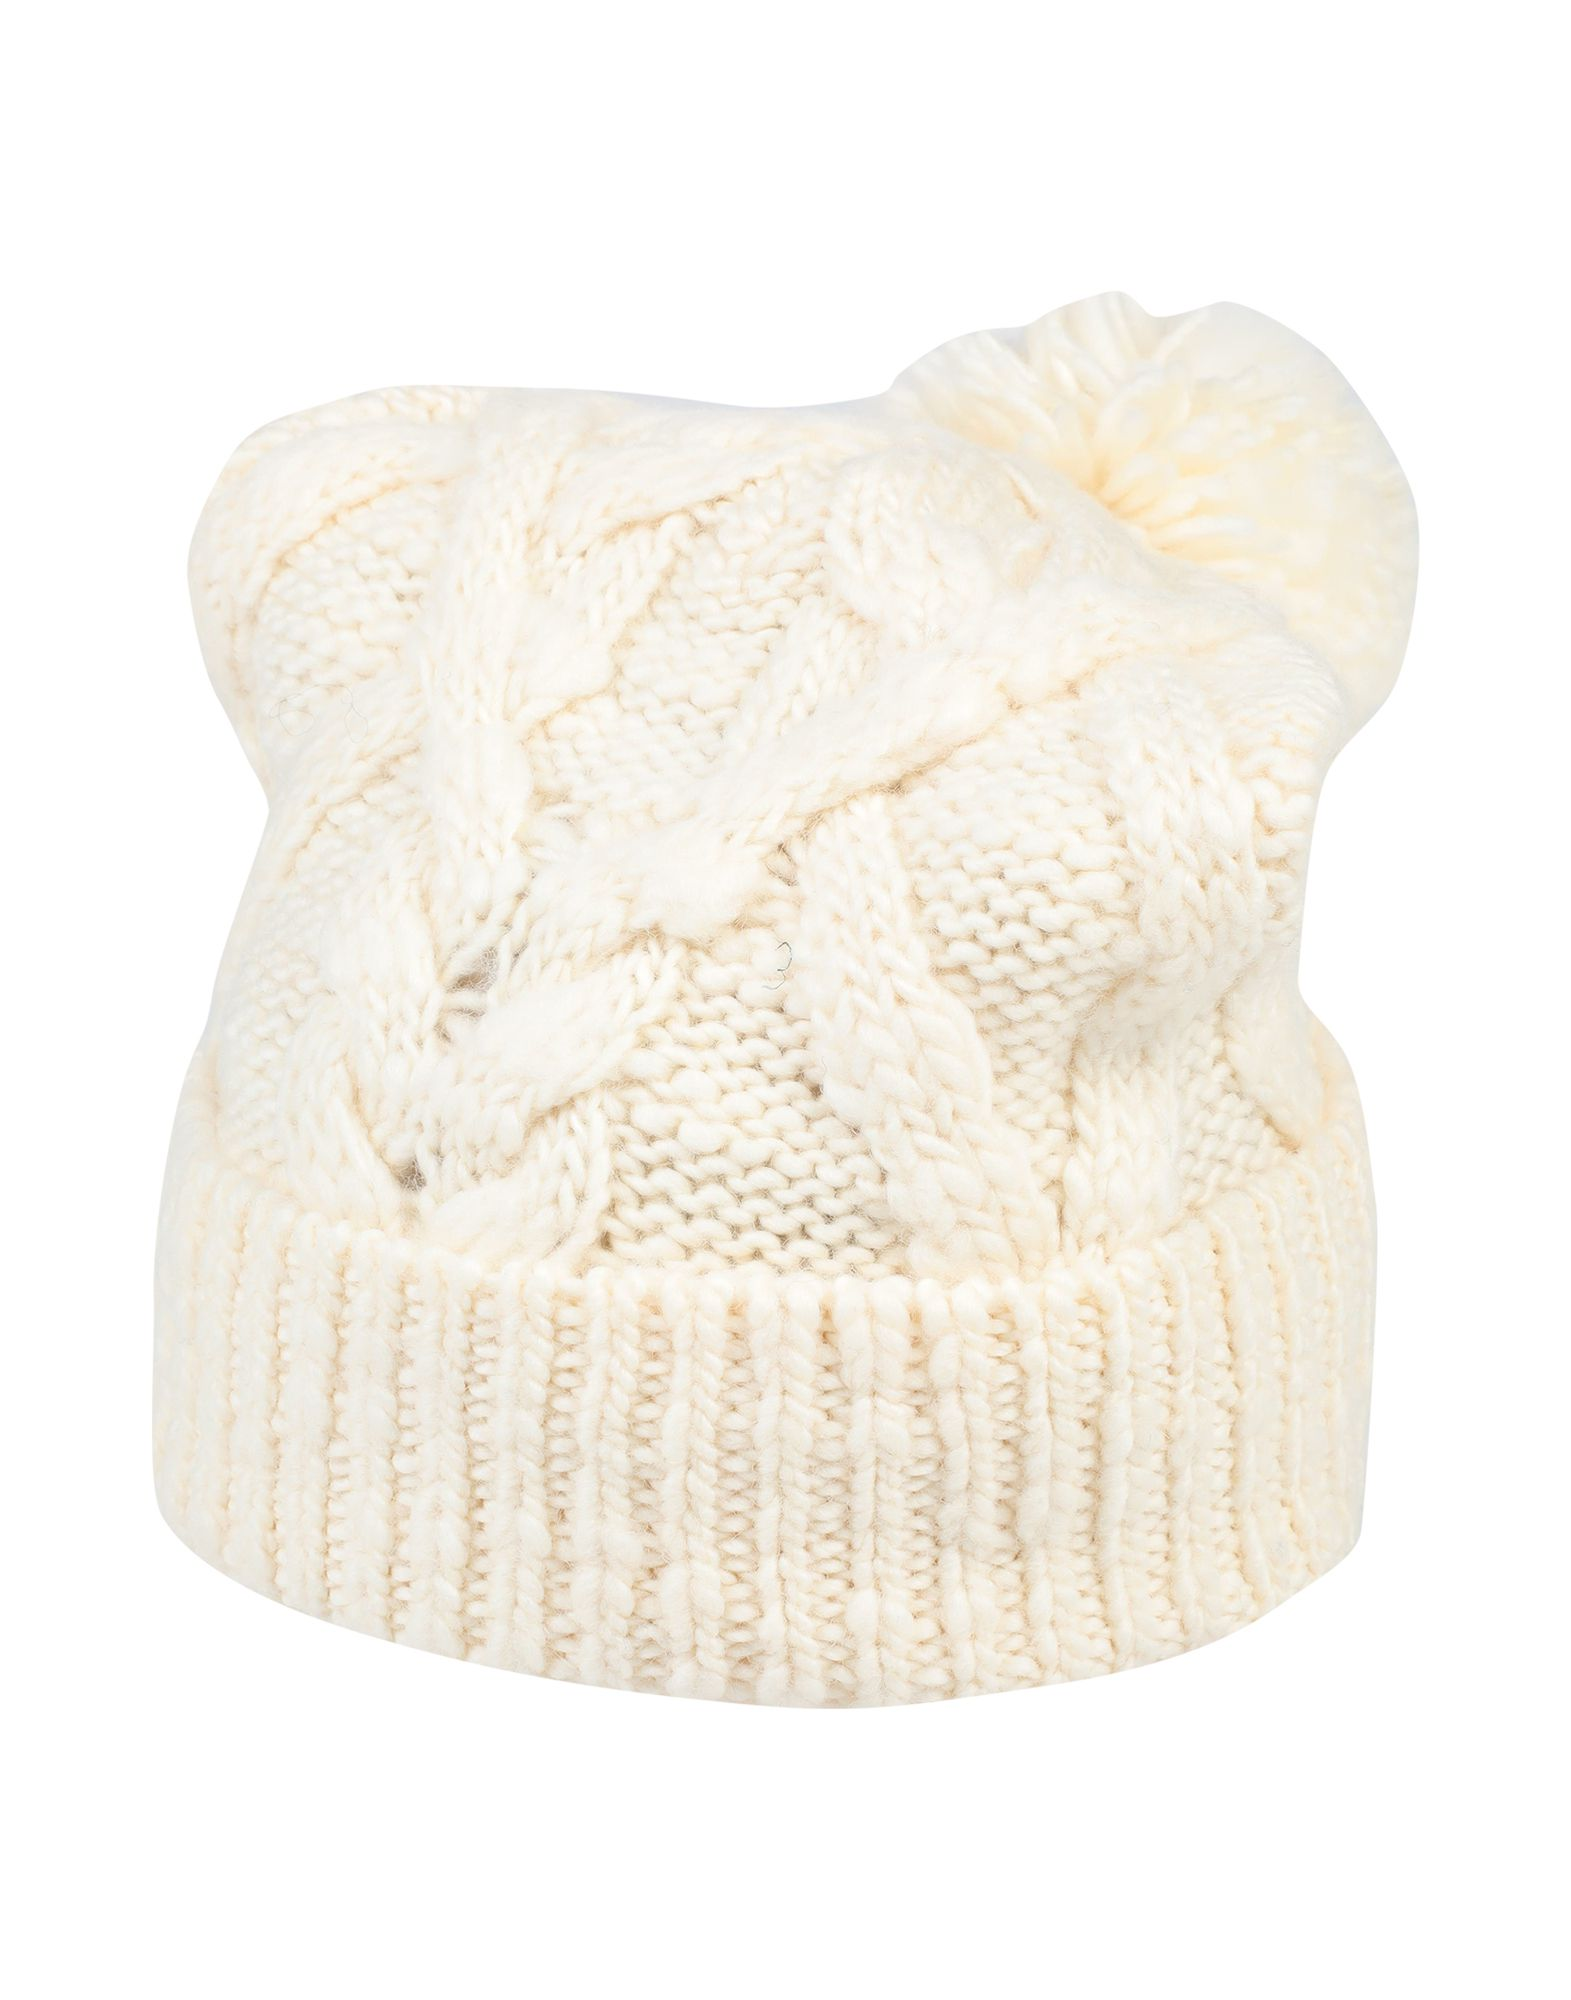 ISABEL MARANT Hats. knitted, contrasting applications, basic solid color. 100% Wool